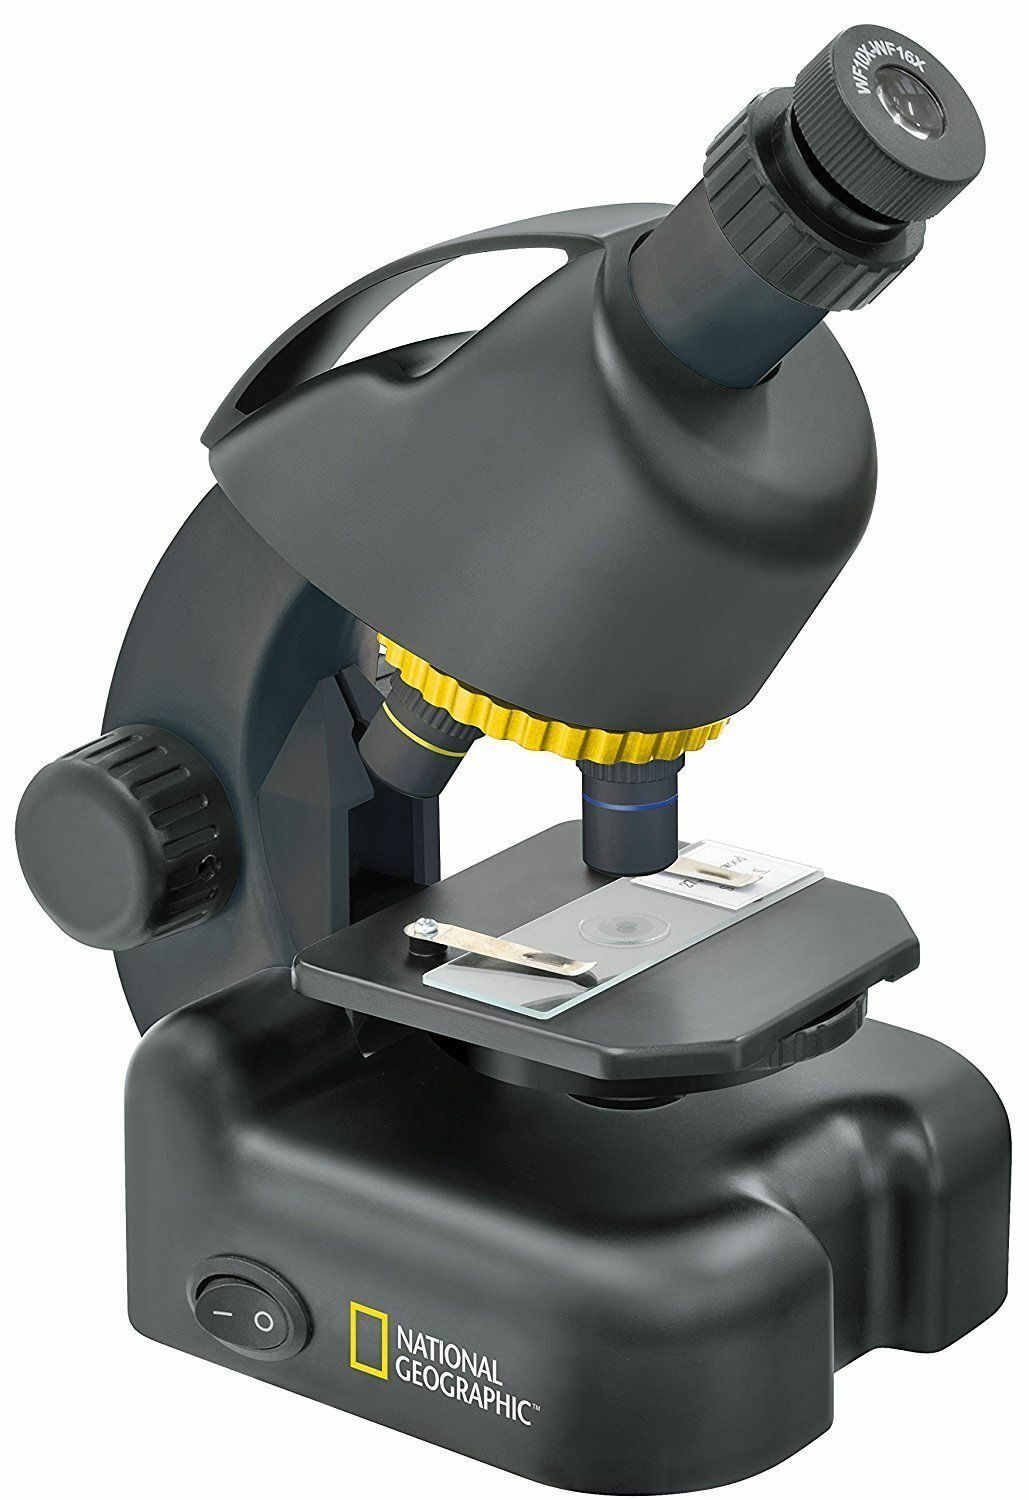 National Geographic Microscope 40x-640x with Smartphone Holder (UK) NEW